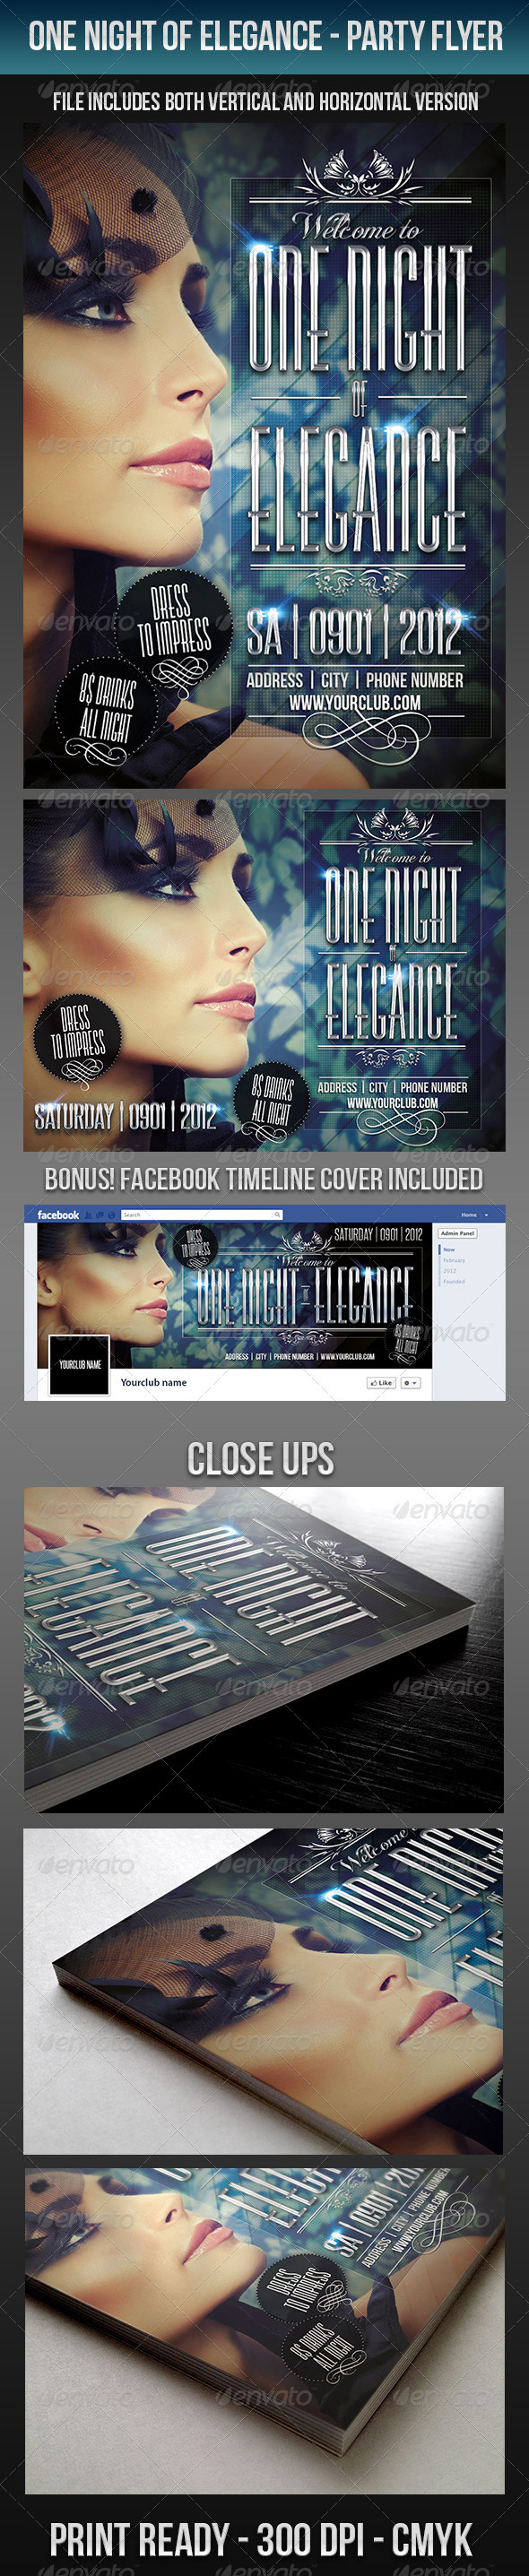 One Night Of Elegance Party Flyer - Clubs & Parties Events